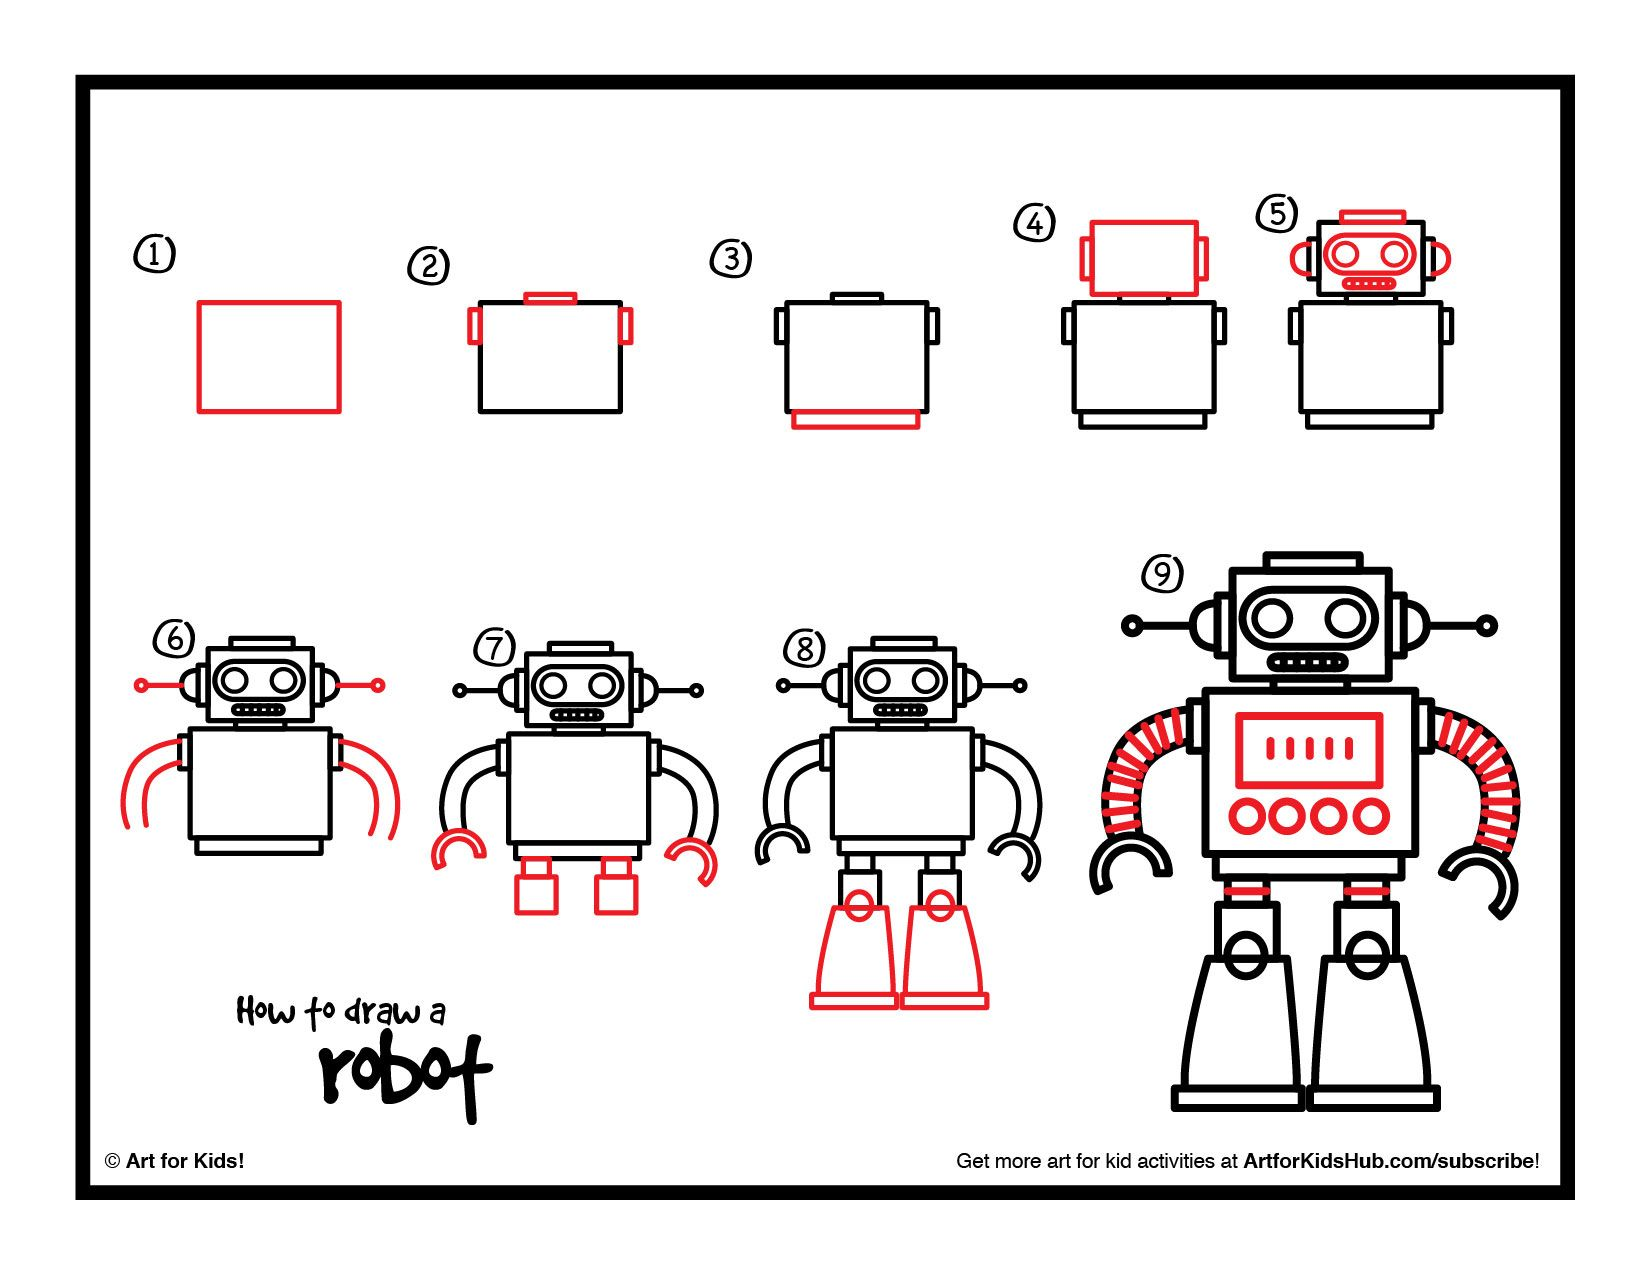 How To Draw A Robot - Art For Kids Hub - | Robot, Free ...